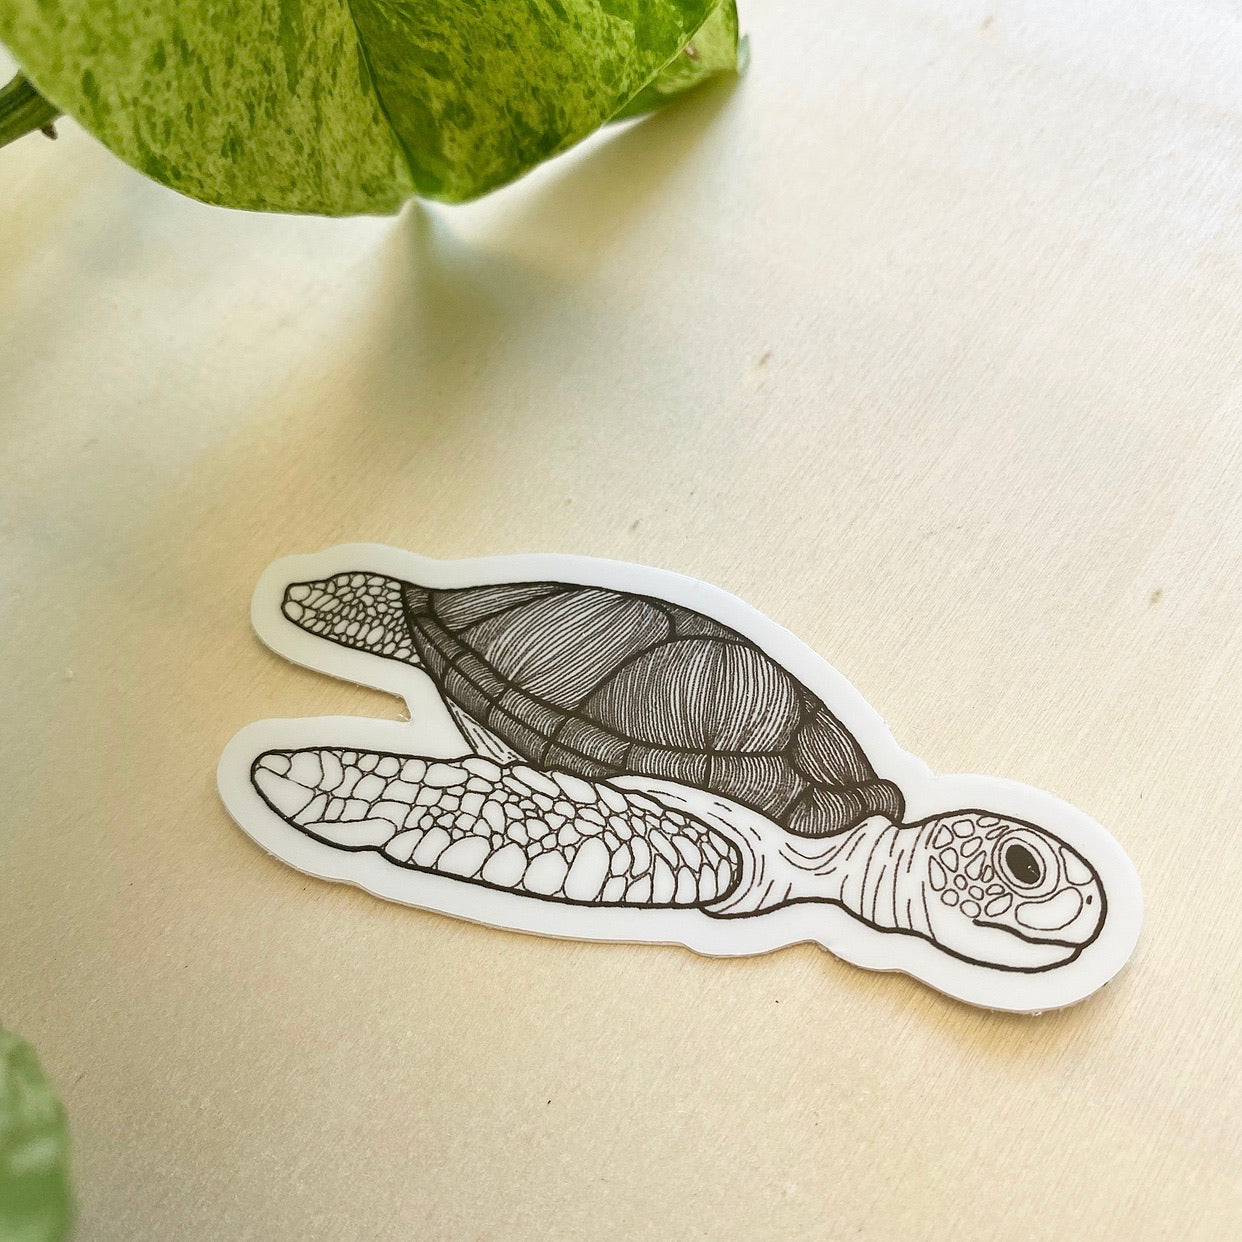 SEA TURTLE - vinyl sticker